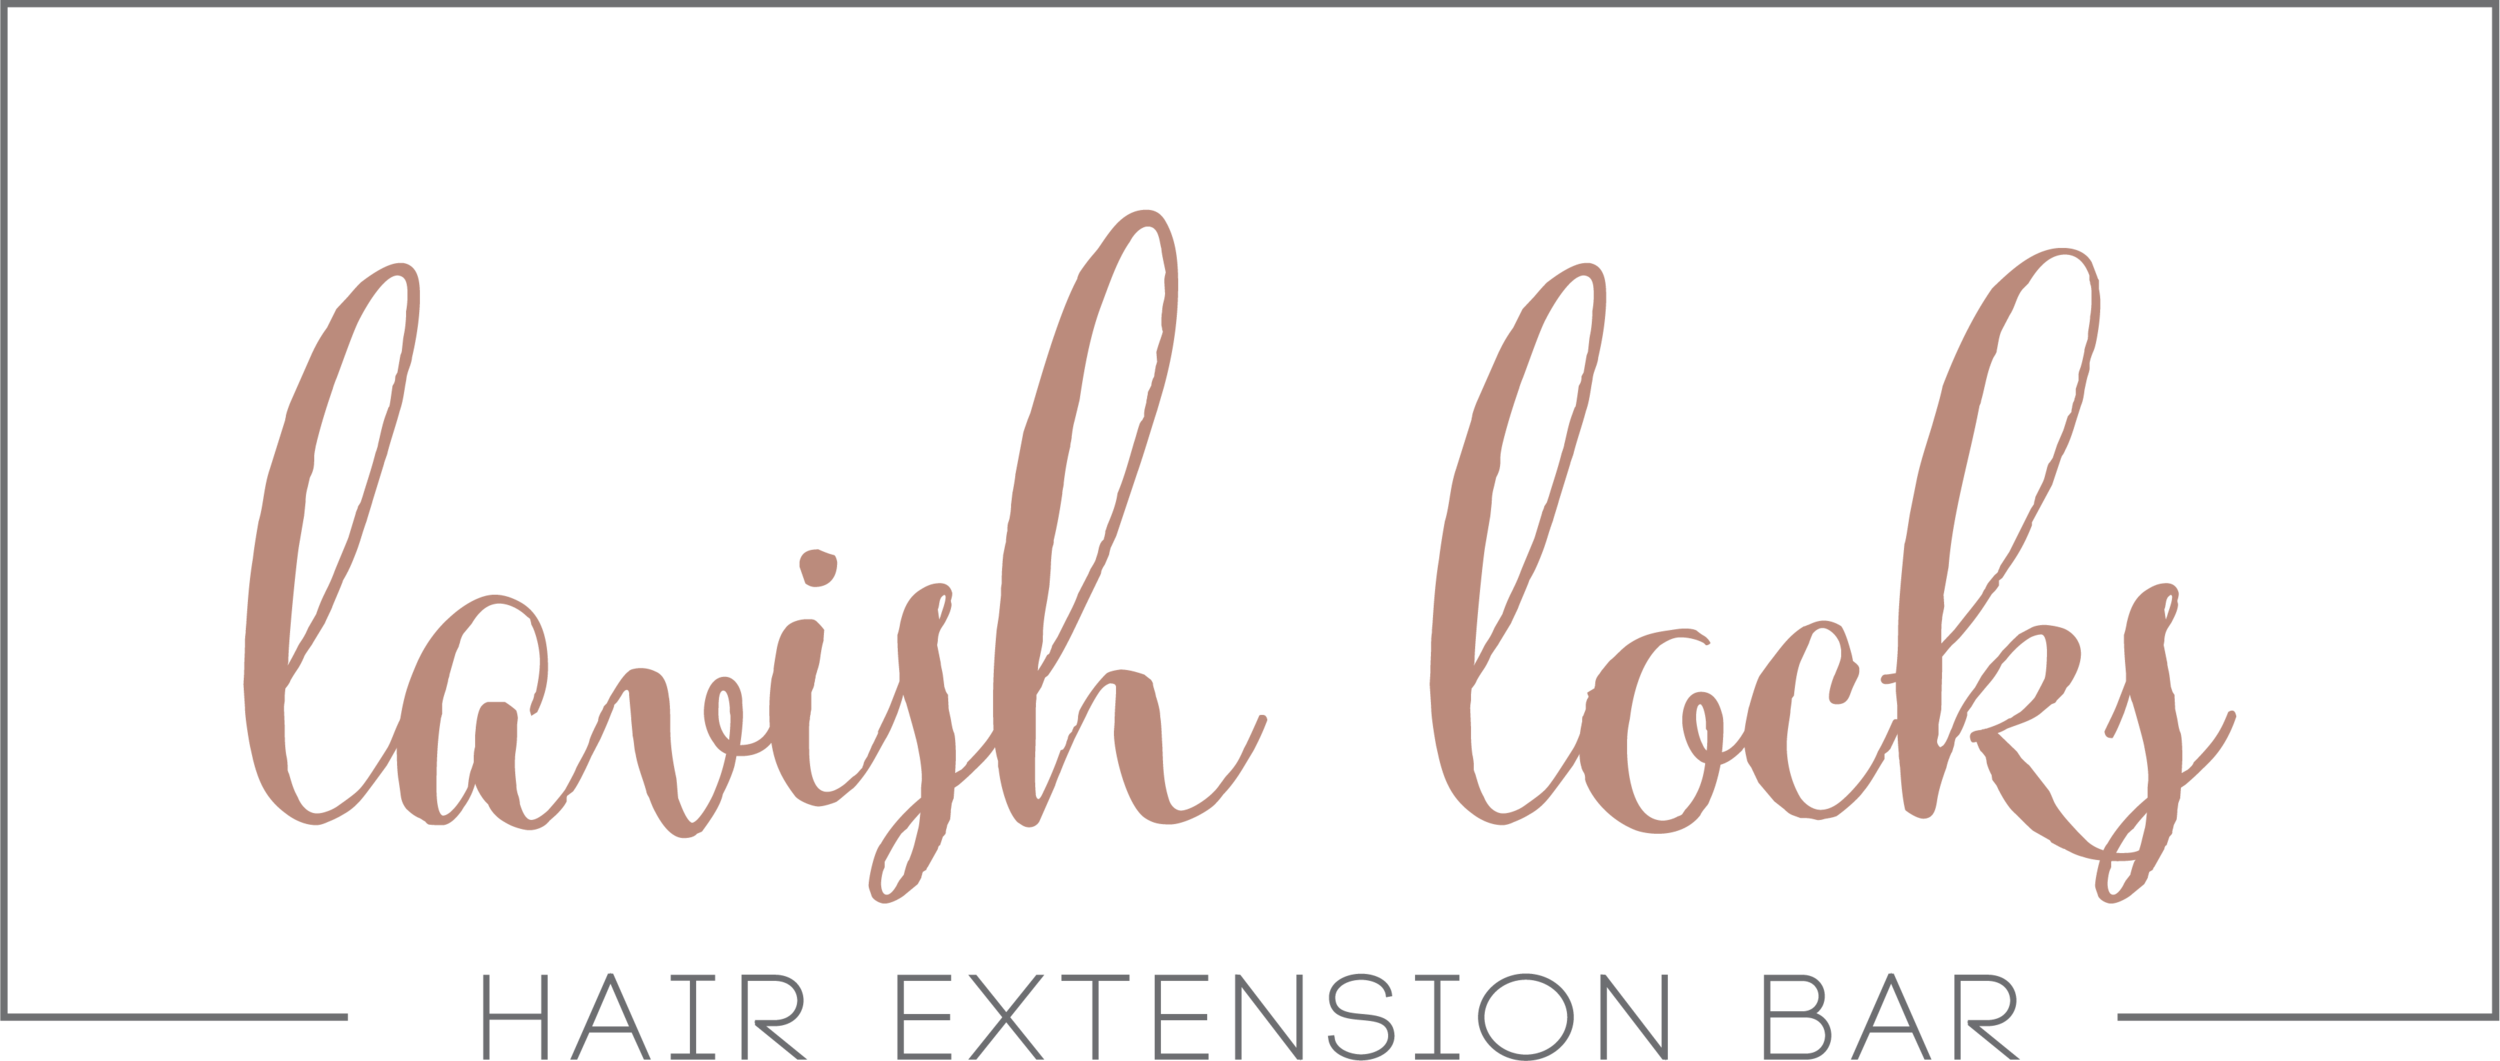 new hair extension bar logo main.png